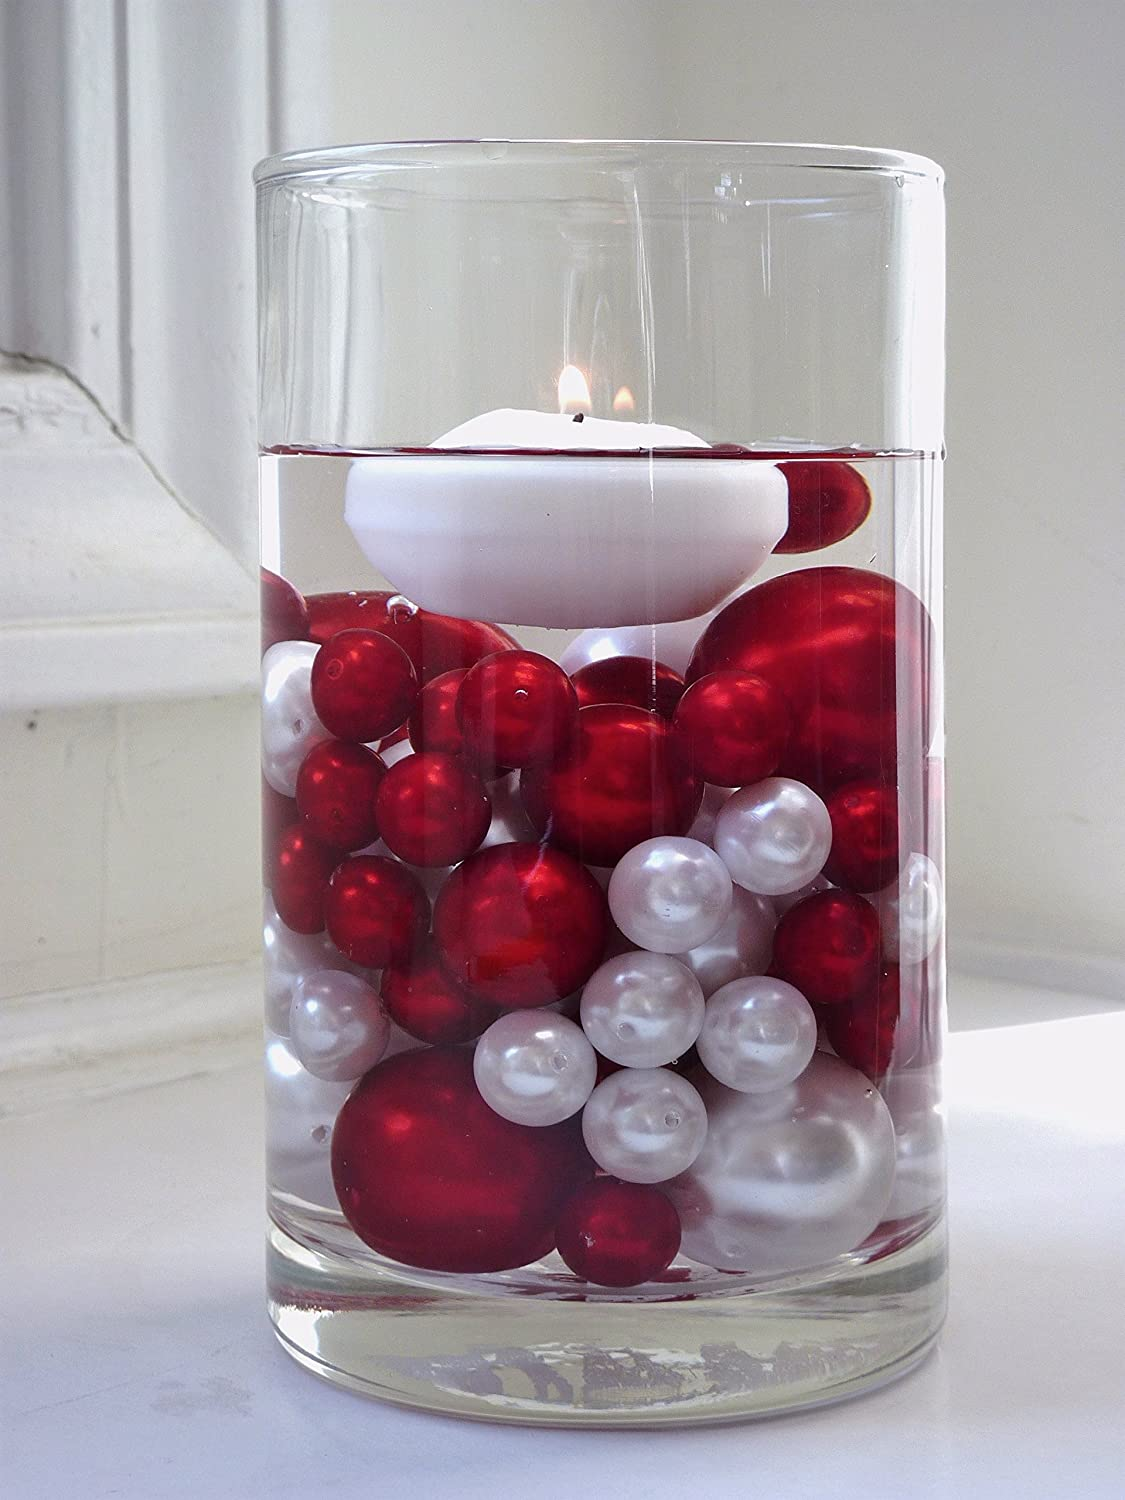 Amazon 2 packs jumbo assorted sizes all red pearls vase amazon 2 packs jumbo assorted sizes all red pearls vase fillers value pack for centerpieces to float the pearls order the transparent water gels floridaeventfo Images